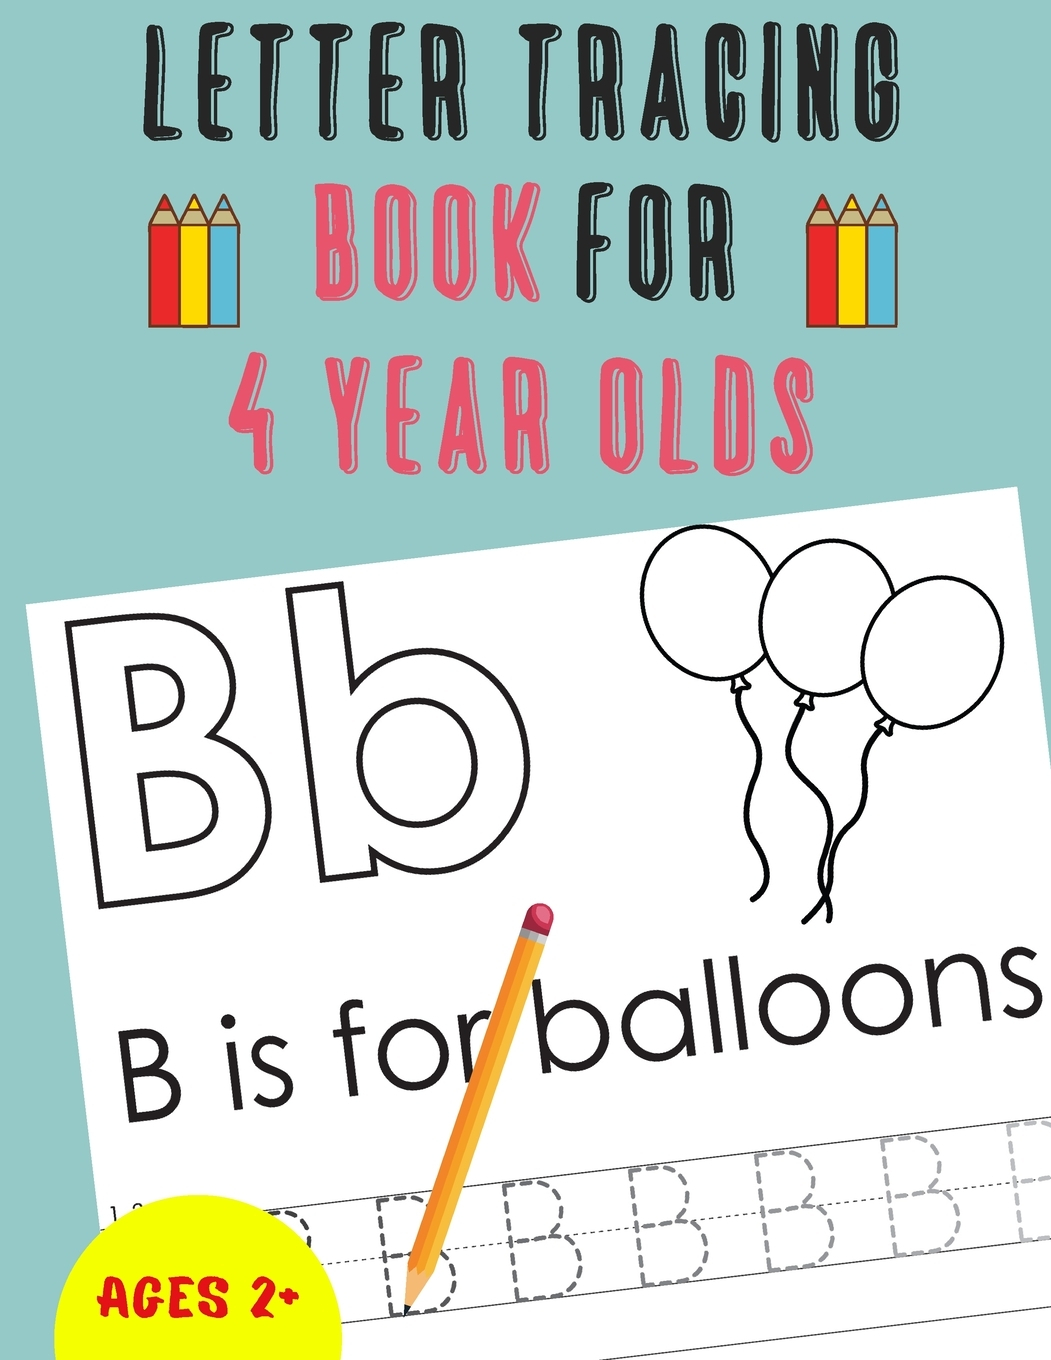 Letter Tracing Book For 4 Year Olds: Alphabet Tracing Book For 4 Year Olds  / Notebook / Practice For Kids / Letter Writing Practice - Gift (Paperback) inside Alphabet Tracing Book Walmart